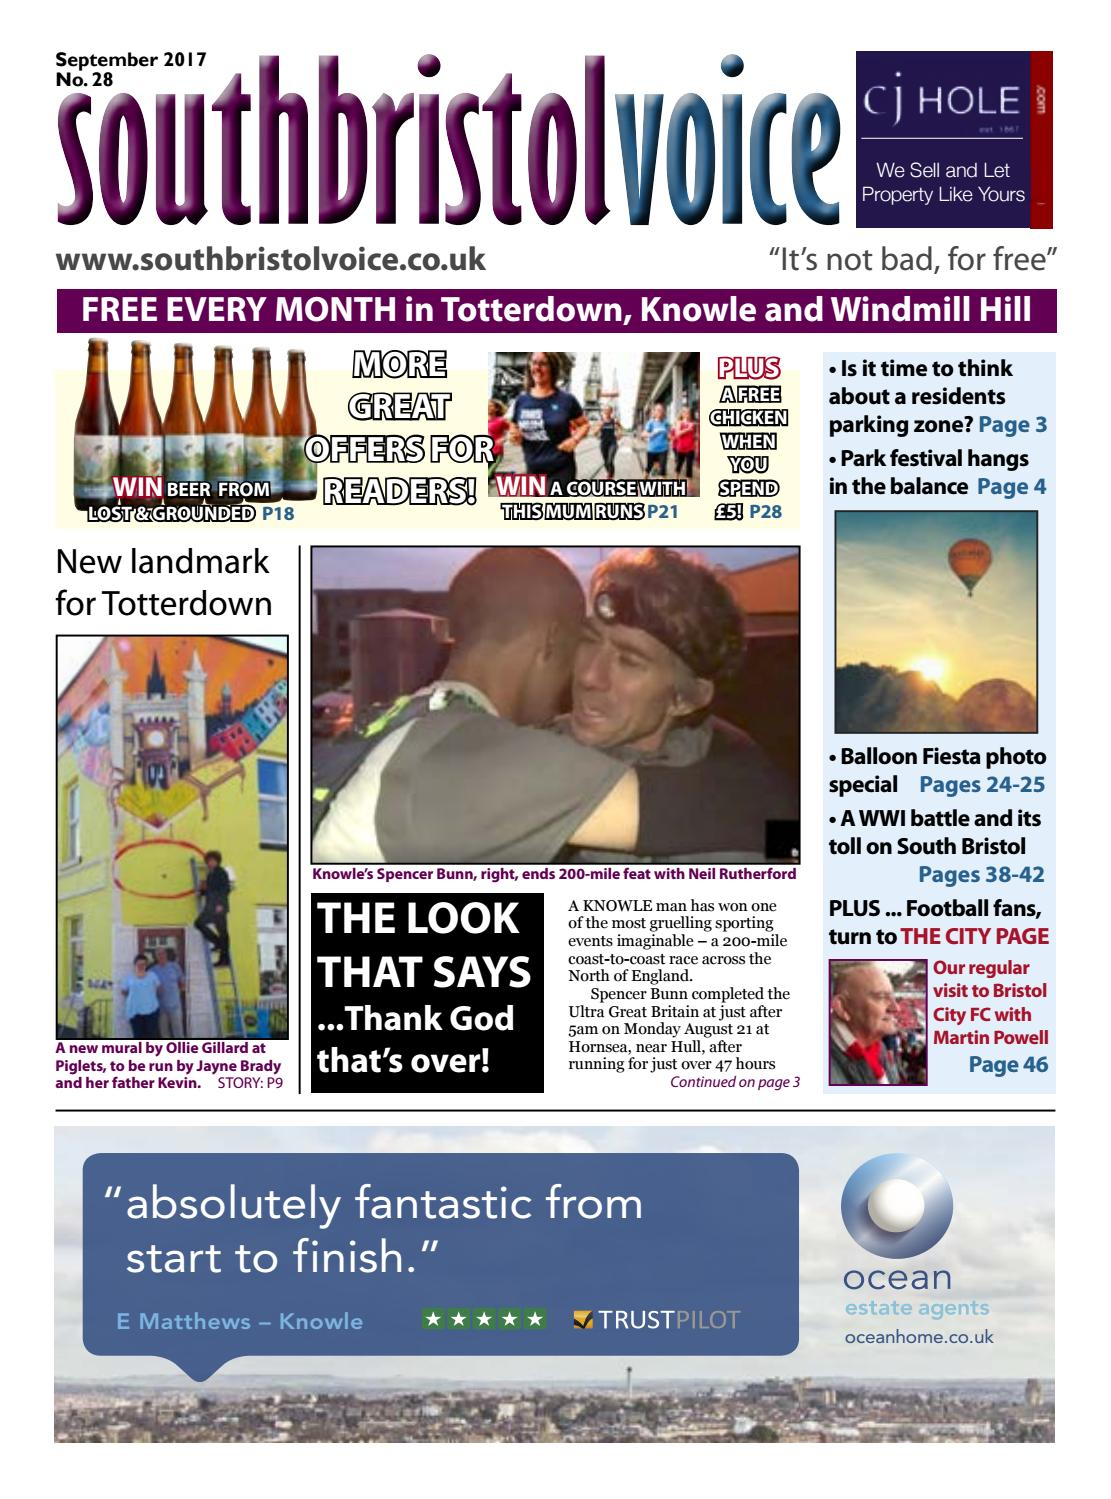 6044a7332e5d8 South Bristol Voice September 2017 by South Bristol Voice - issuu